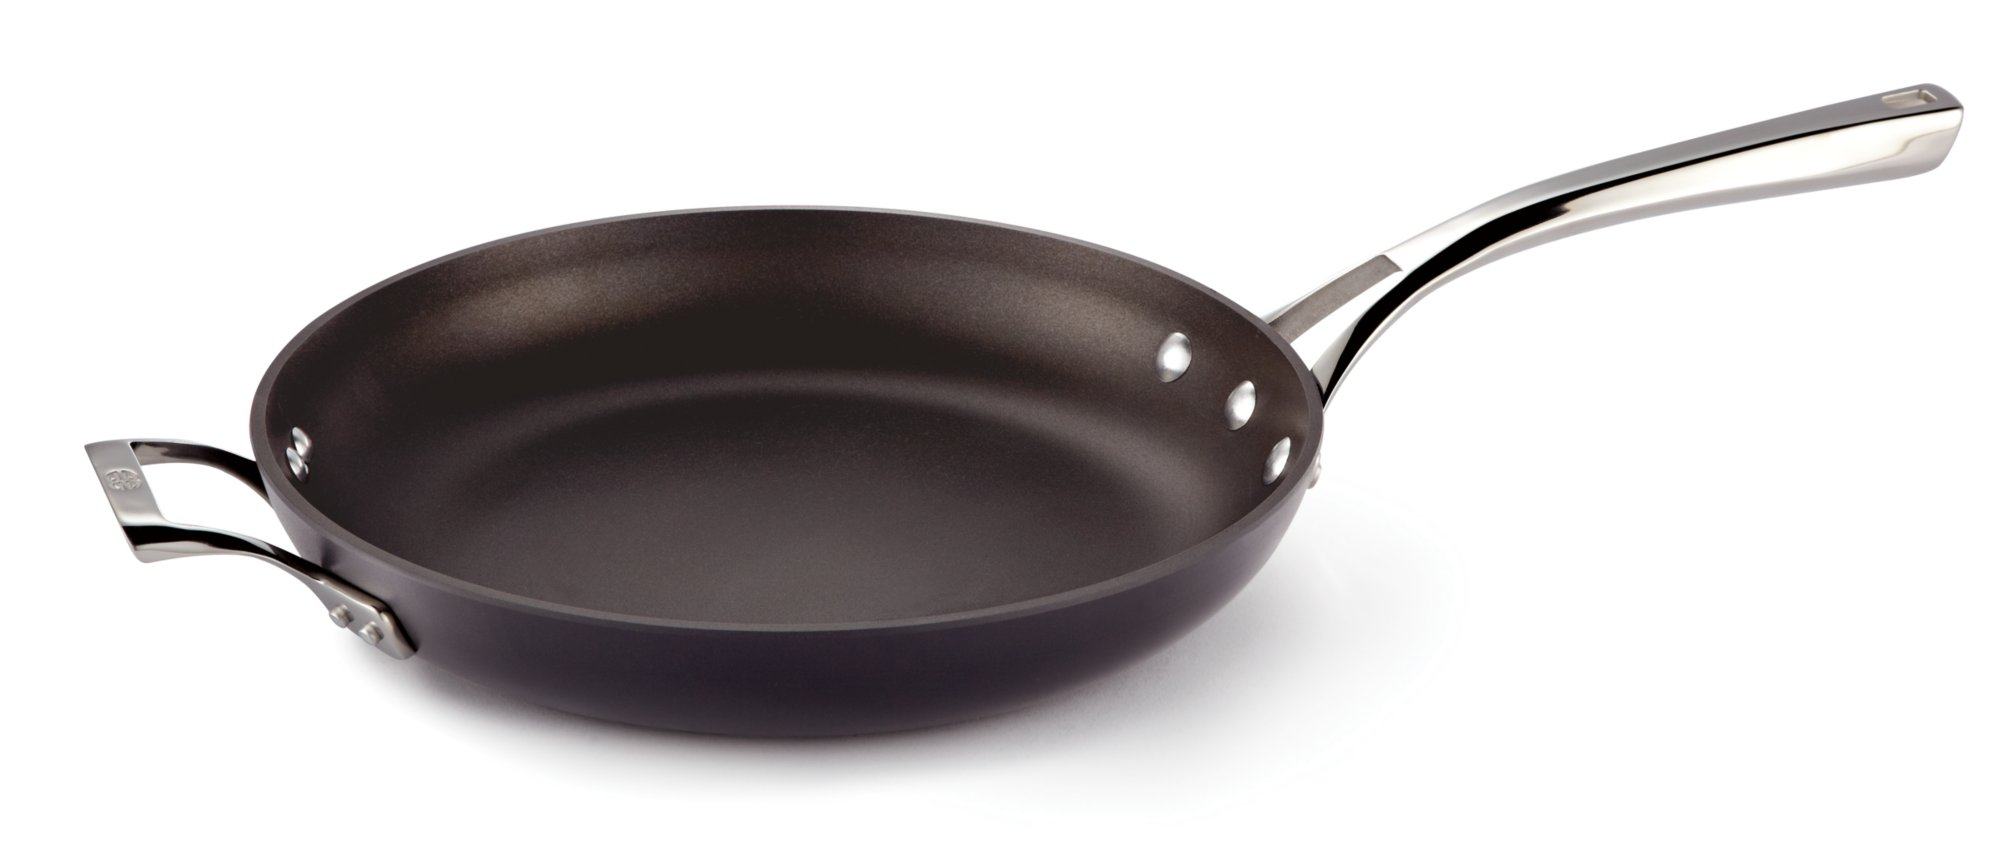 Calphalon Williams-Sonoma Elite Nonstick 12-in. Fry Pan